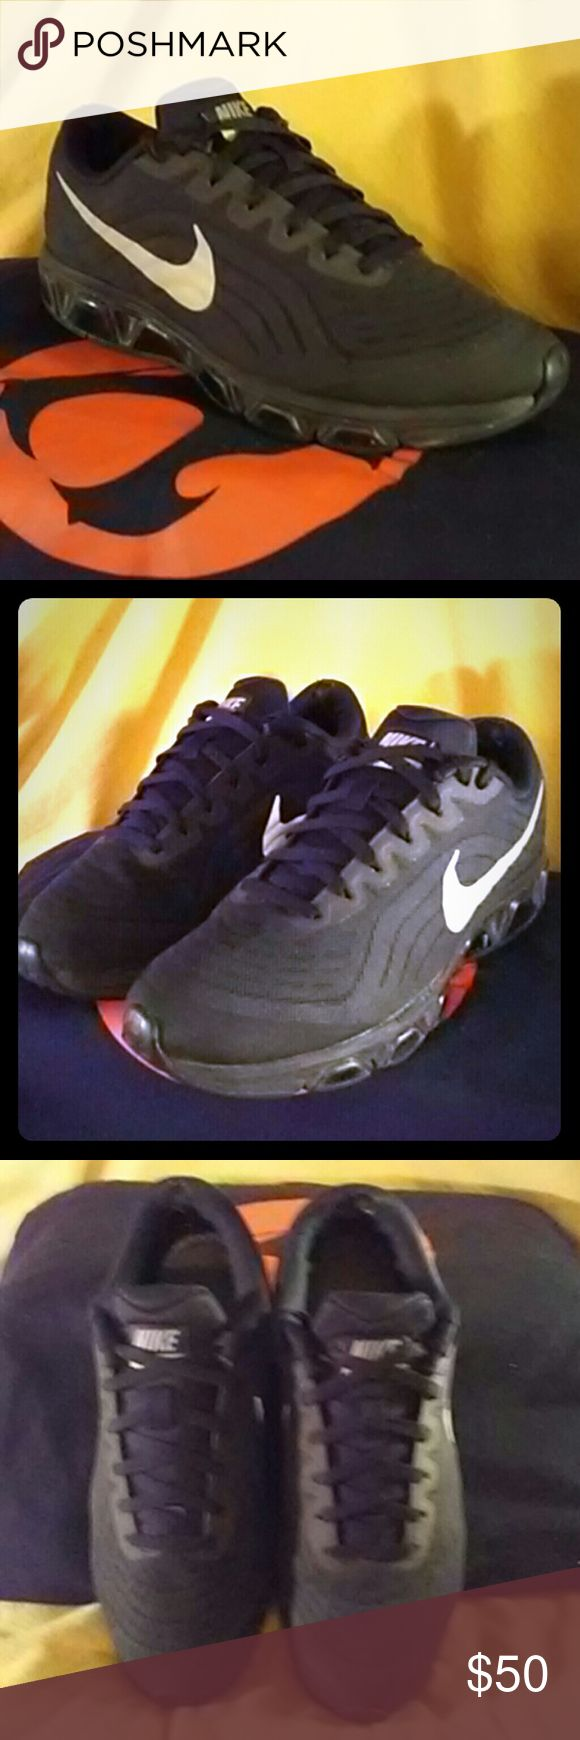 Sold Nike air max Black nike tailwind 6. Good condition, only flaw is small hole on the inside of each heel. Excellent all terrain running shoes. Nike Shoes Athletic Shoes